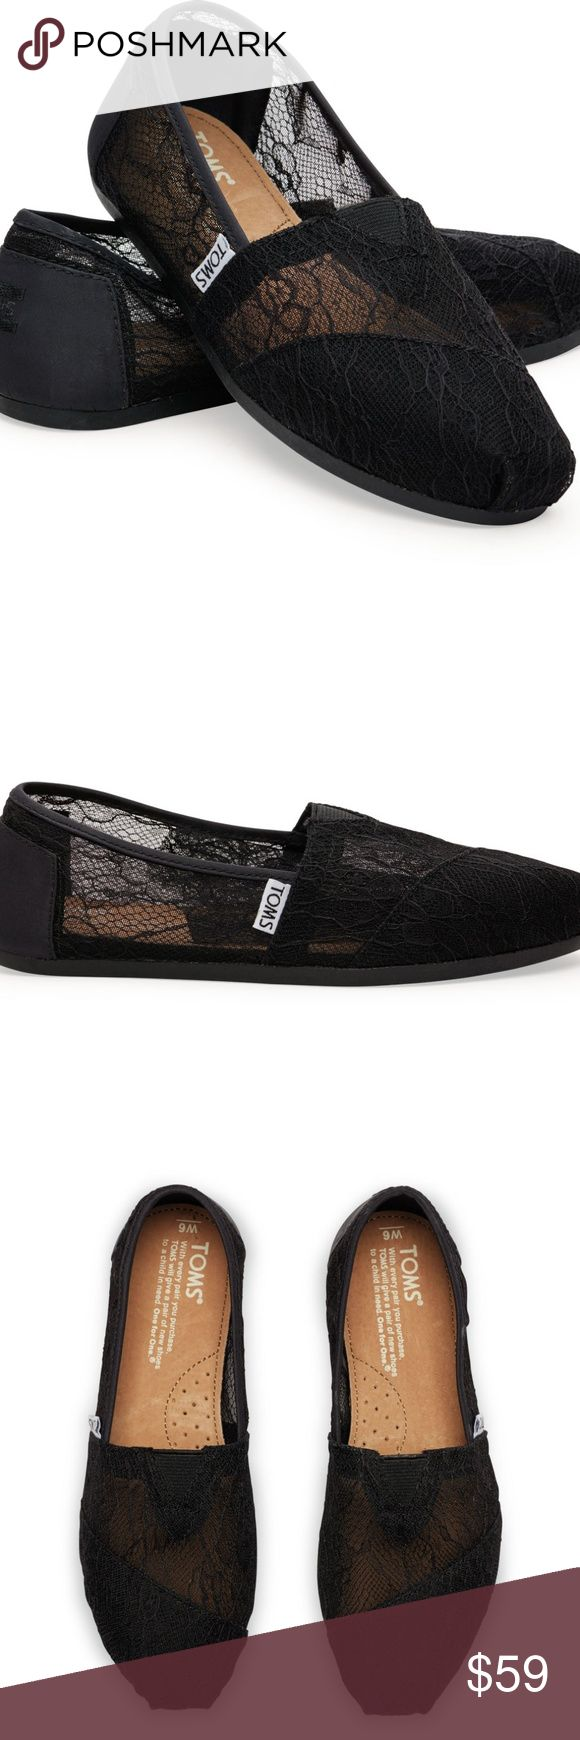 Classic Black Lace TOMS Classic Black Lace TOMS Sheer beauty. A transparent lace upper makes this Classic a perfectly airy complement to any fresh, casual look. •TOMS toe-stitch and elastic V for easy on and off •Classic suede insole with cushion for comfort • Latex arch insert for added support • TOMS Classic one-piece outsole for flexibility and durability Never been worn. I never even tried them on. I accidentally bought the wrong size and it was too late to return them. TOMS Shoes